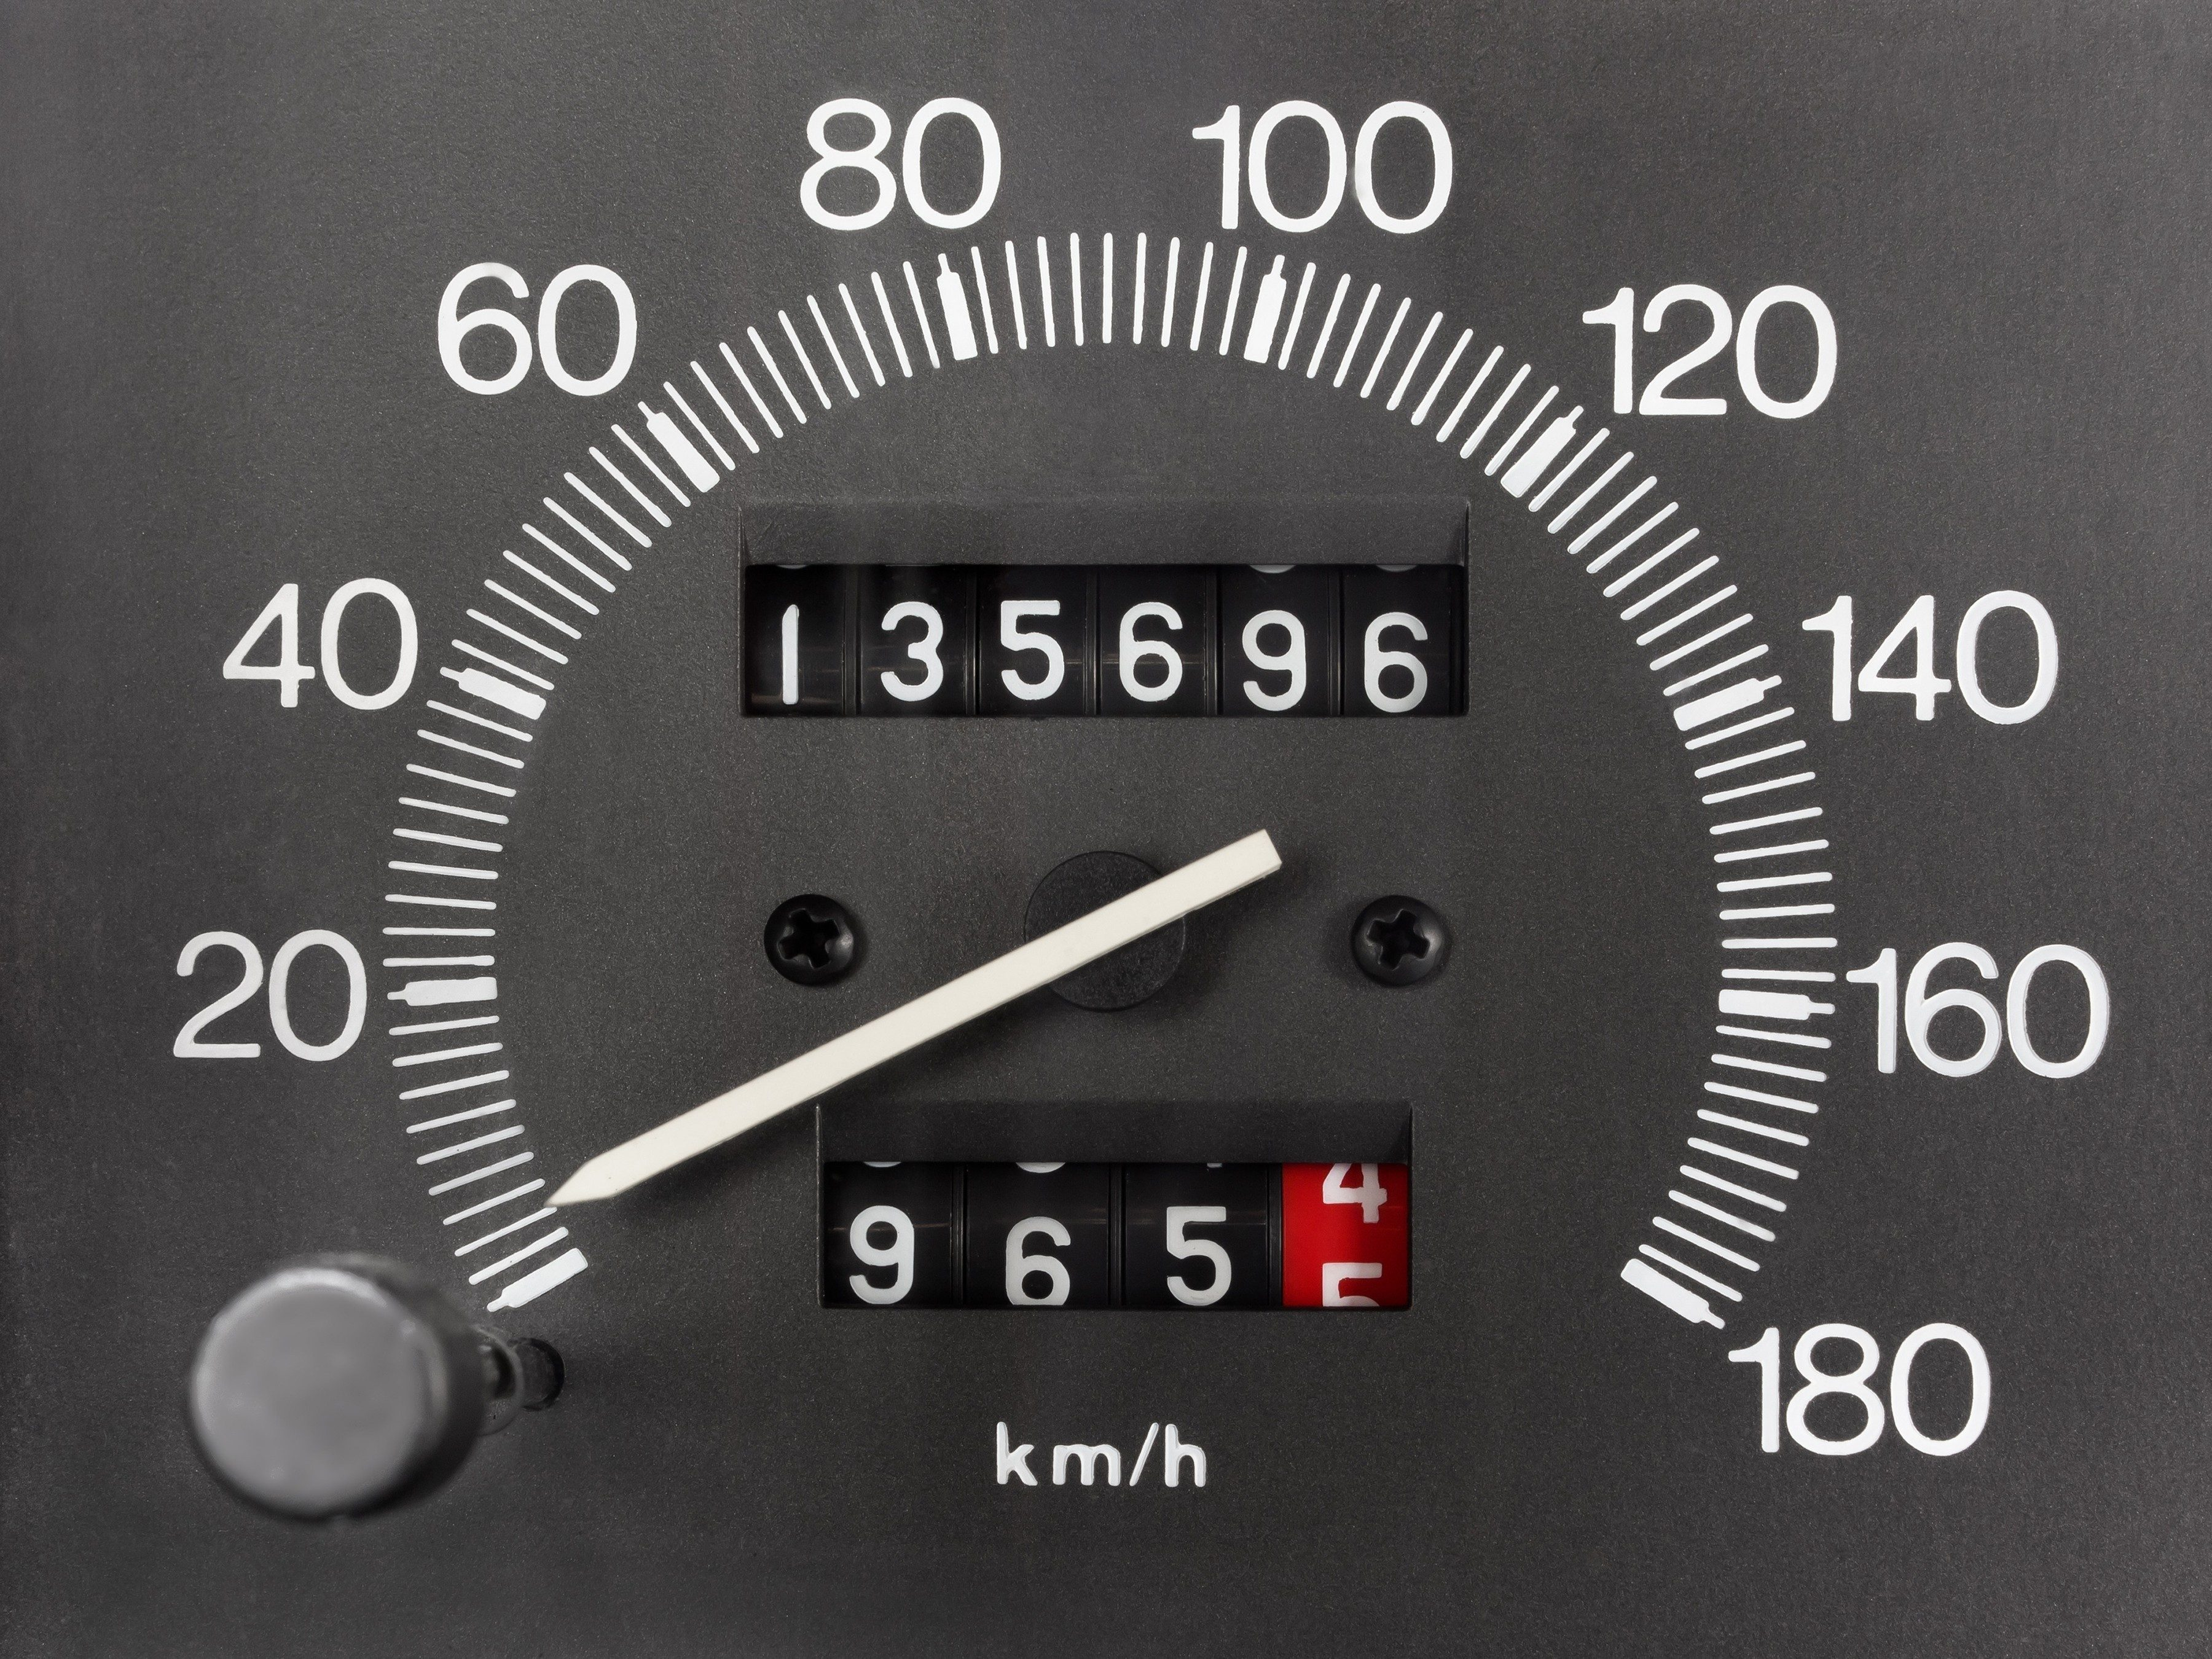 1. Even if you're leasing, you could still be on the hook for excessive mileage or wear.